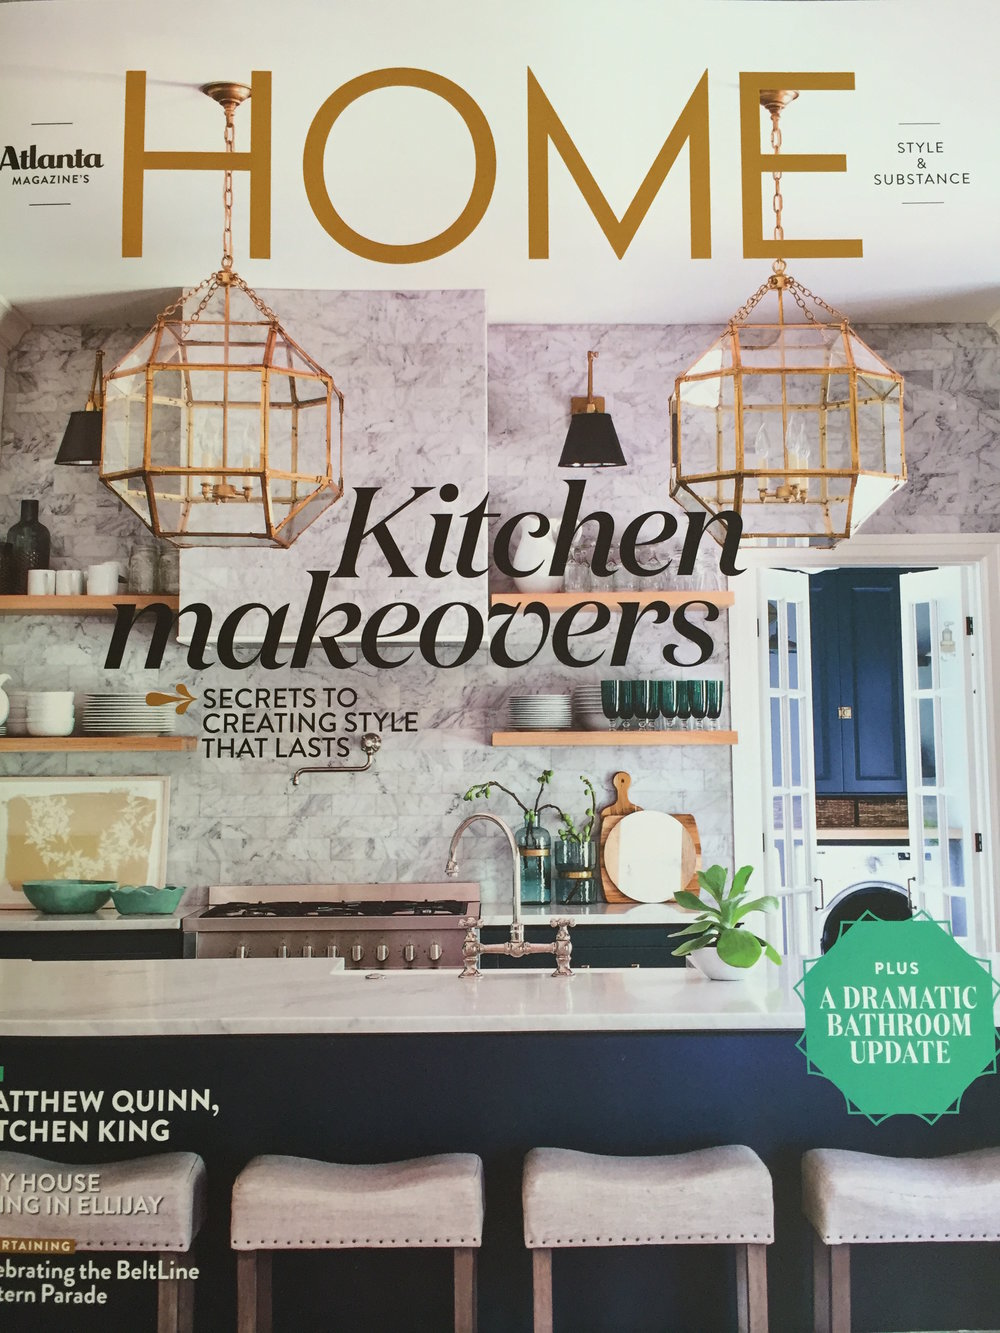 ATLANTA HOME MAG COVER.jpg